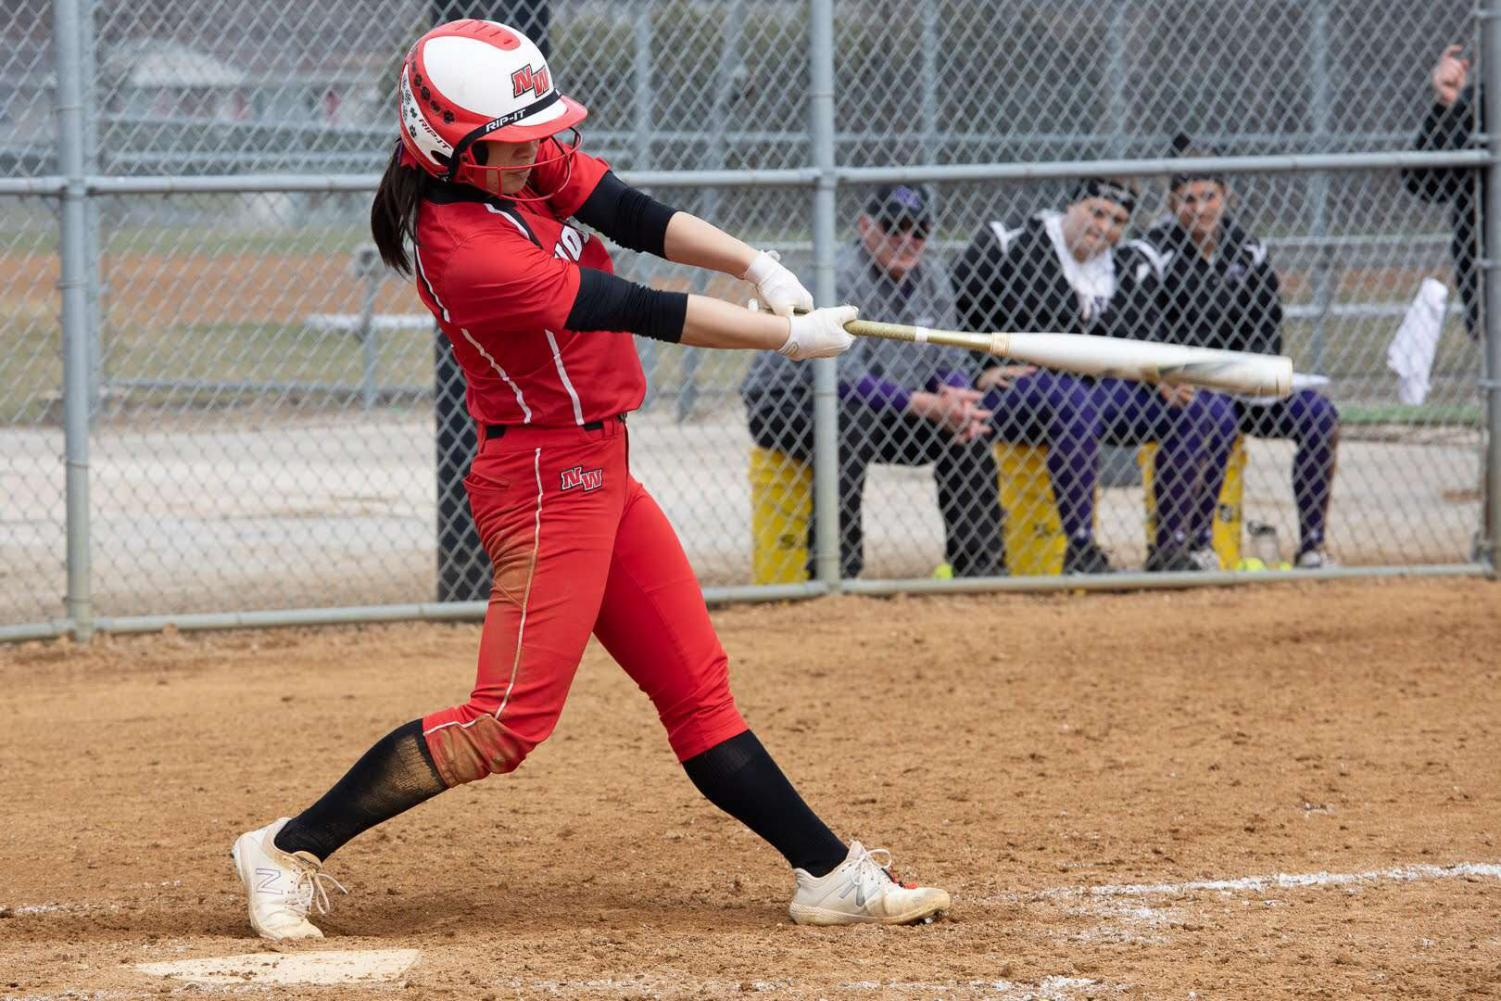 Junior Julia Ruth mid-swing during one of the softball games.